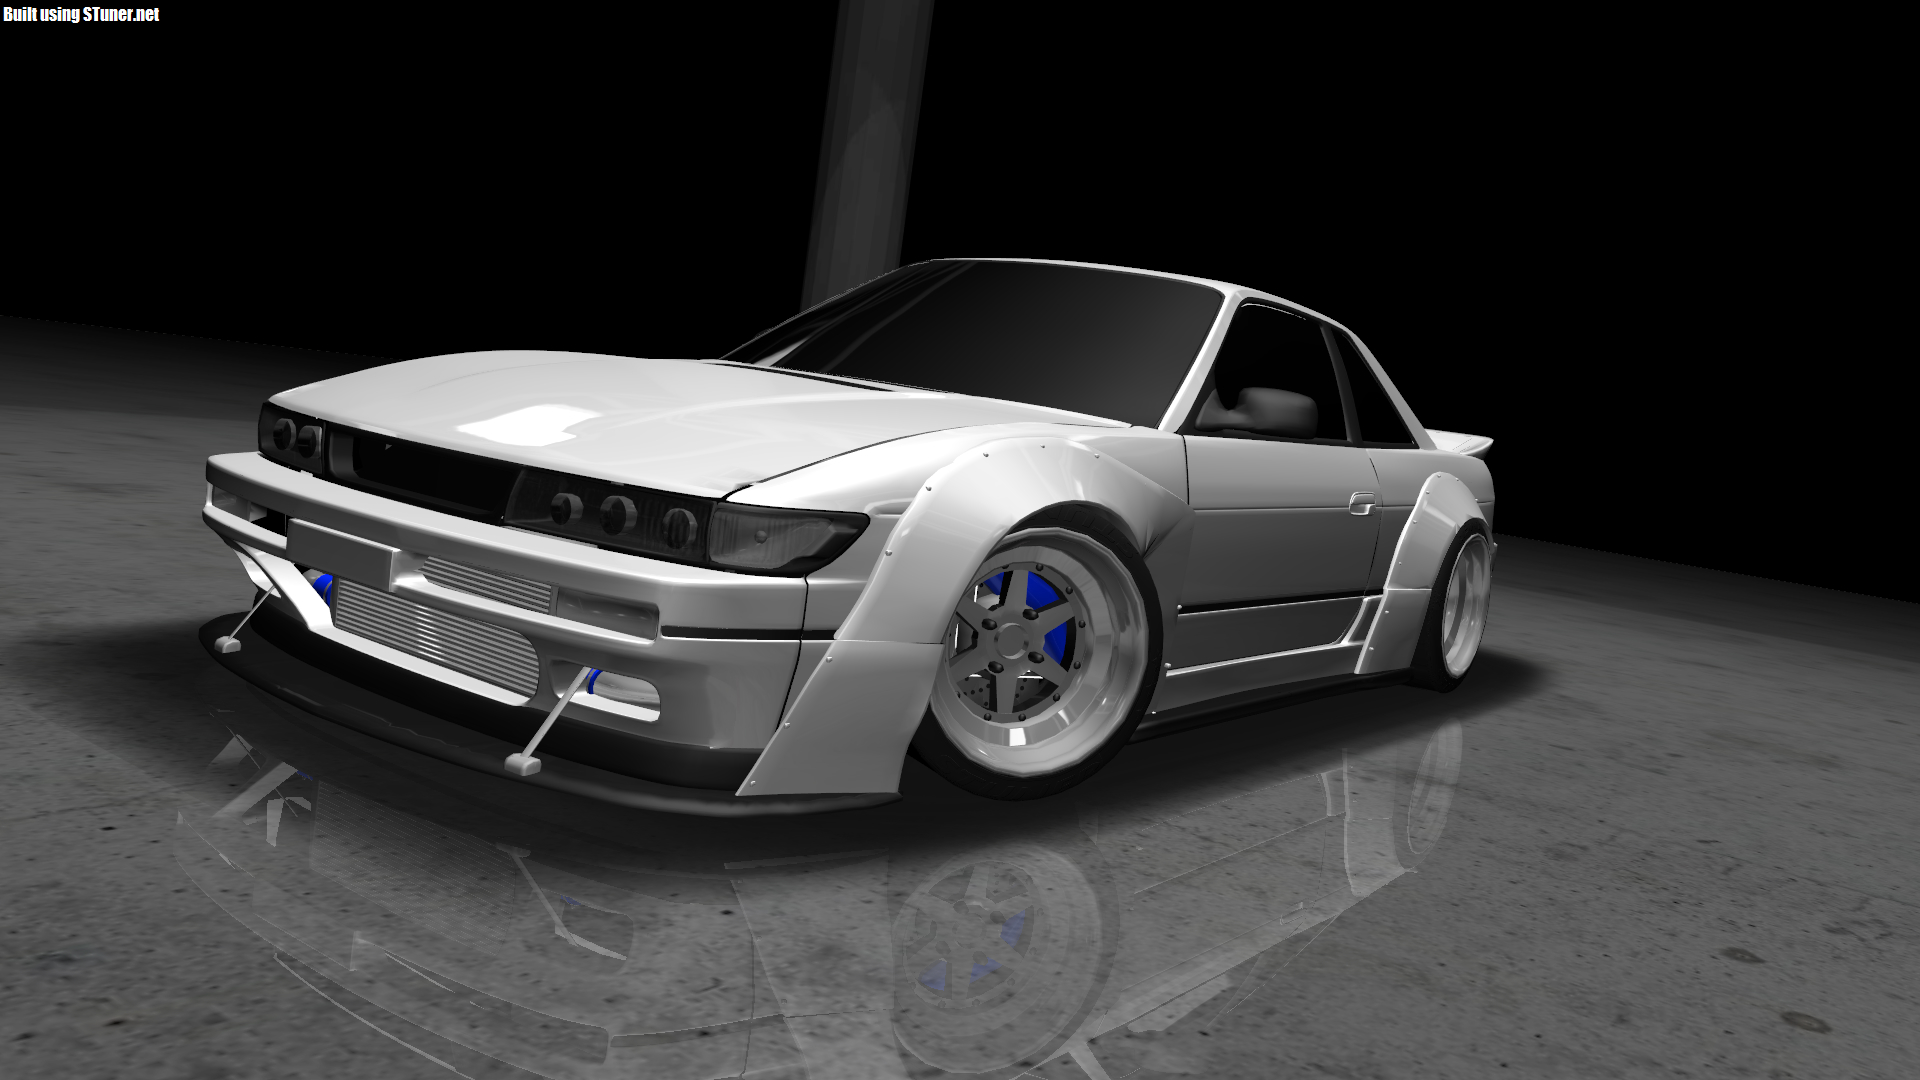 Nissan Silvia S13 made in S-Tuner (Not 3DTuning com)